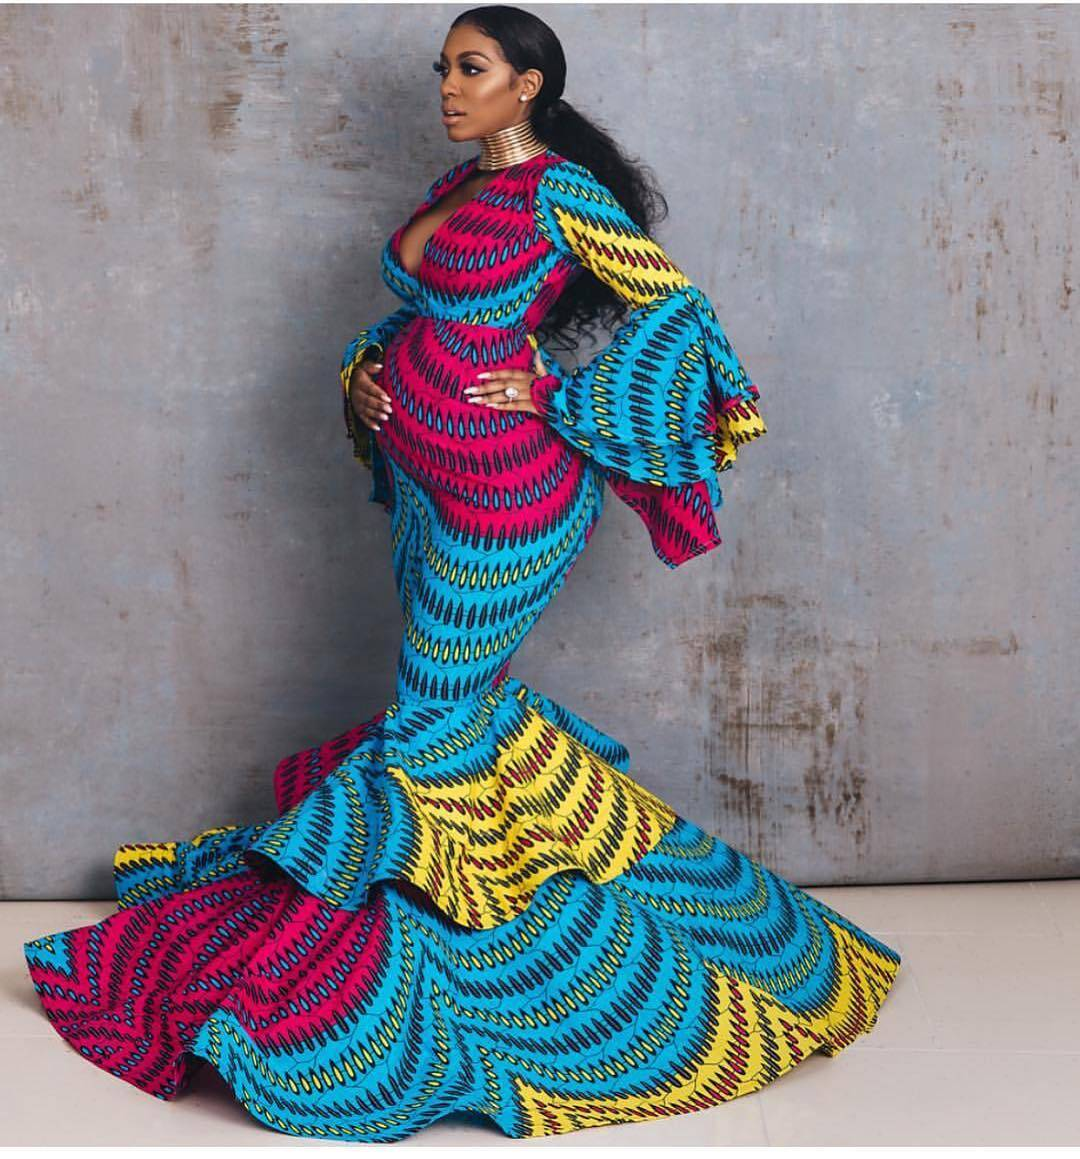 Porsha Williams In African Print Evening Dress By Lavie By CK